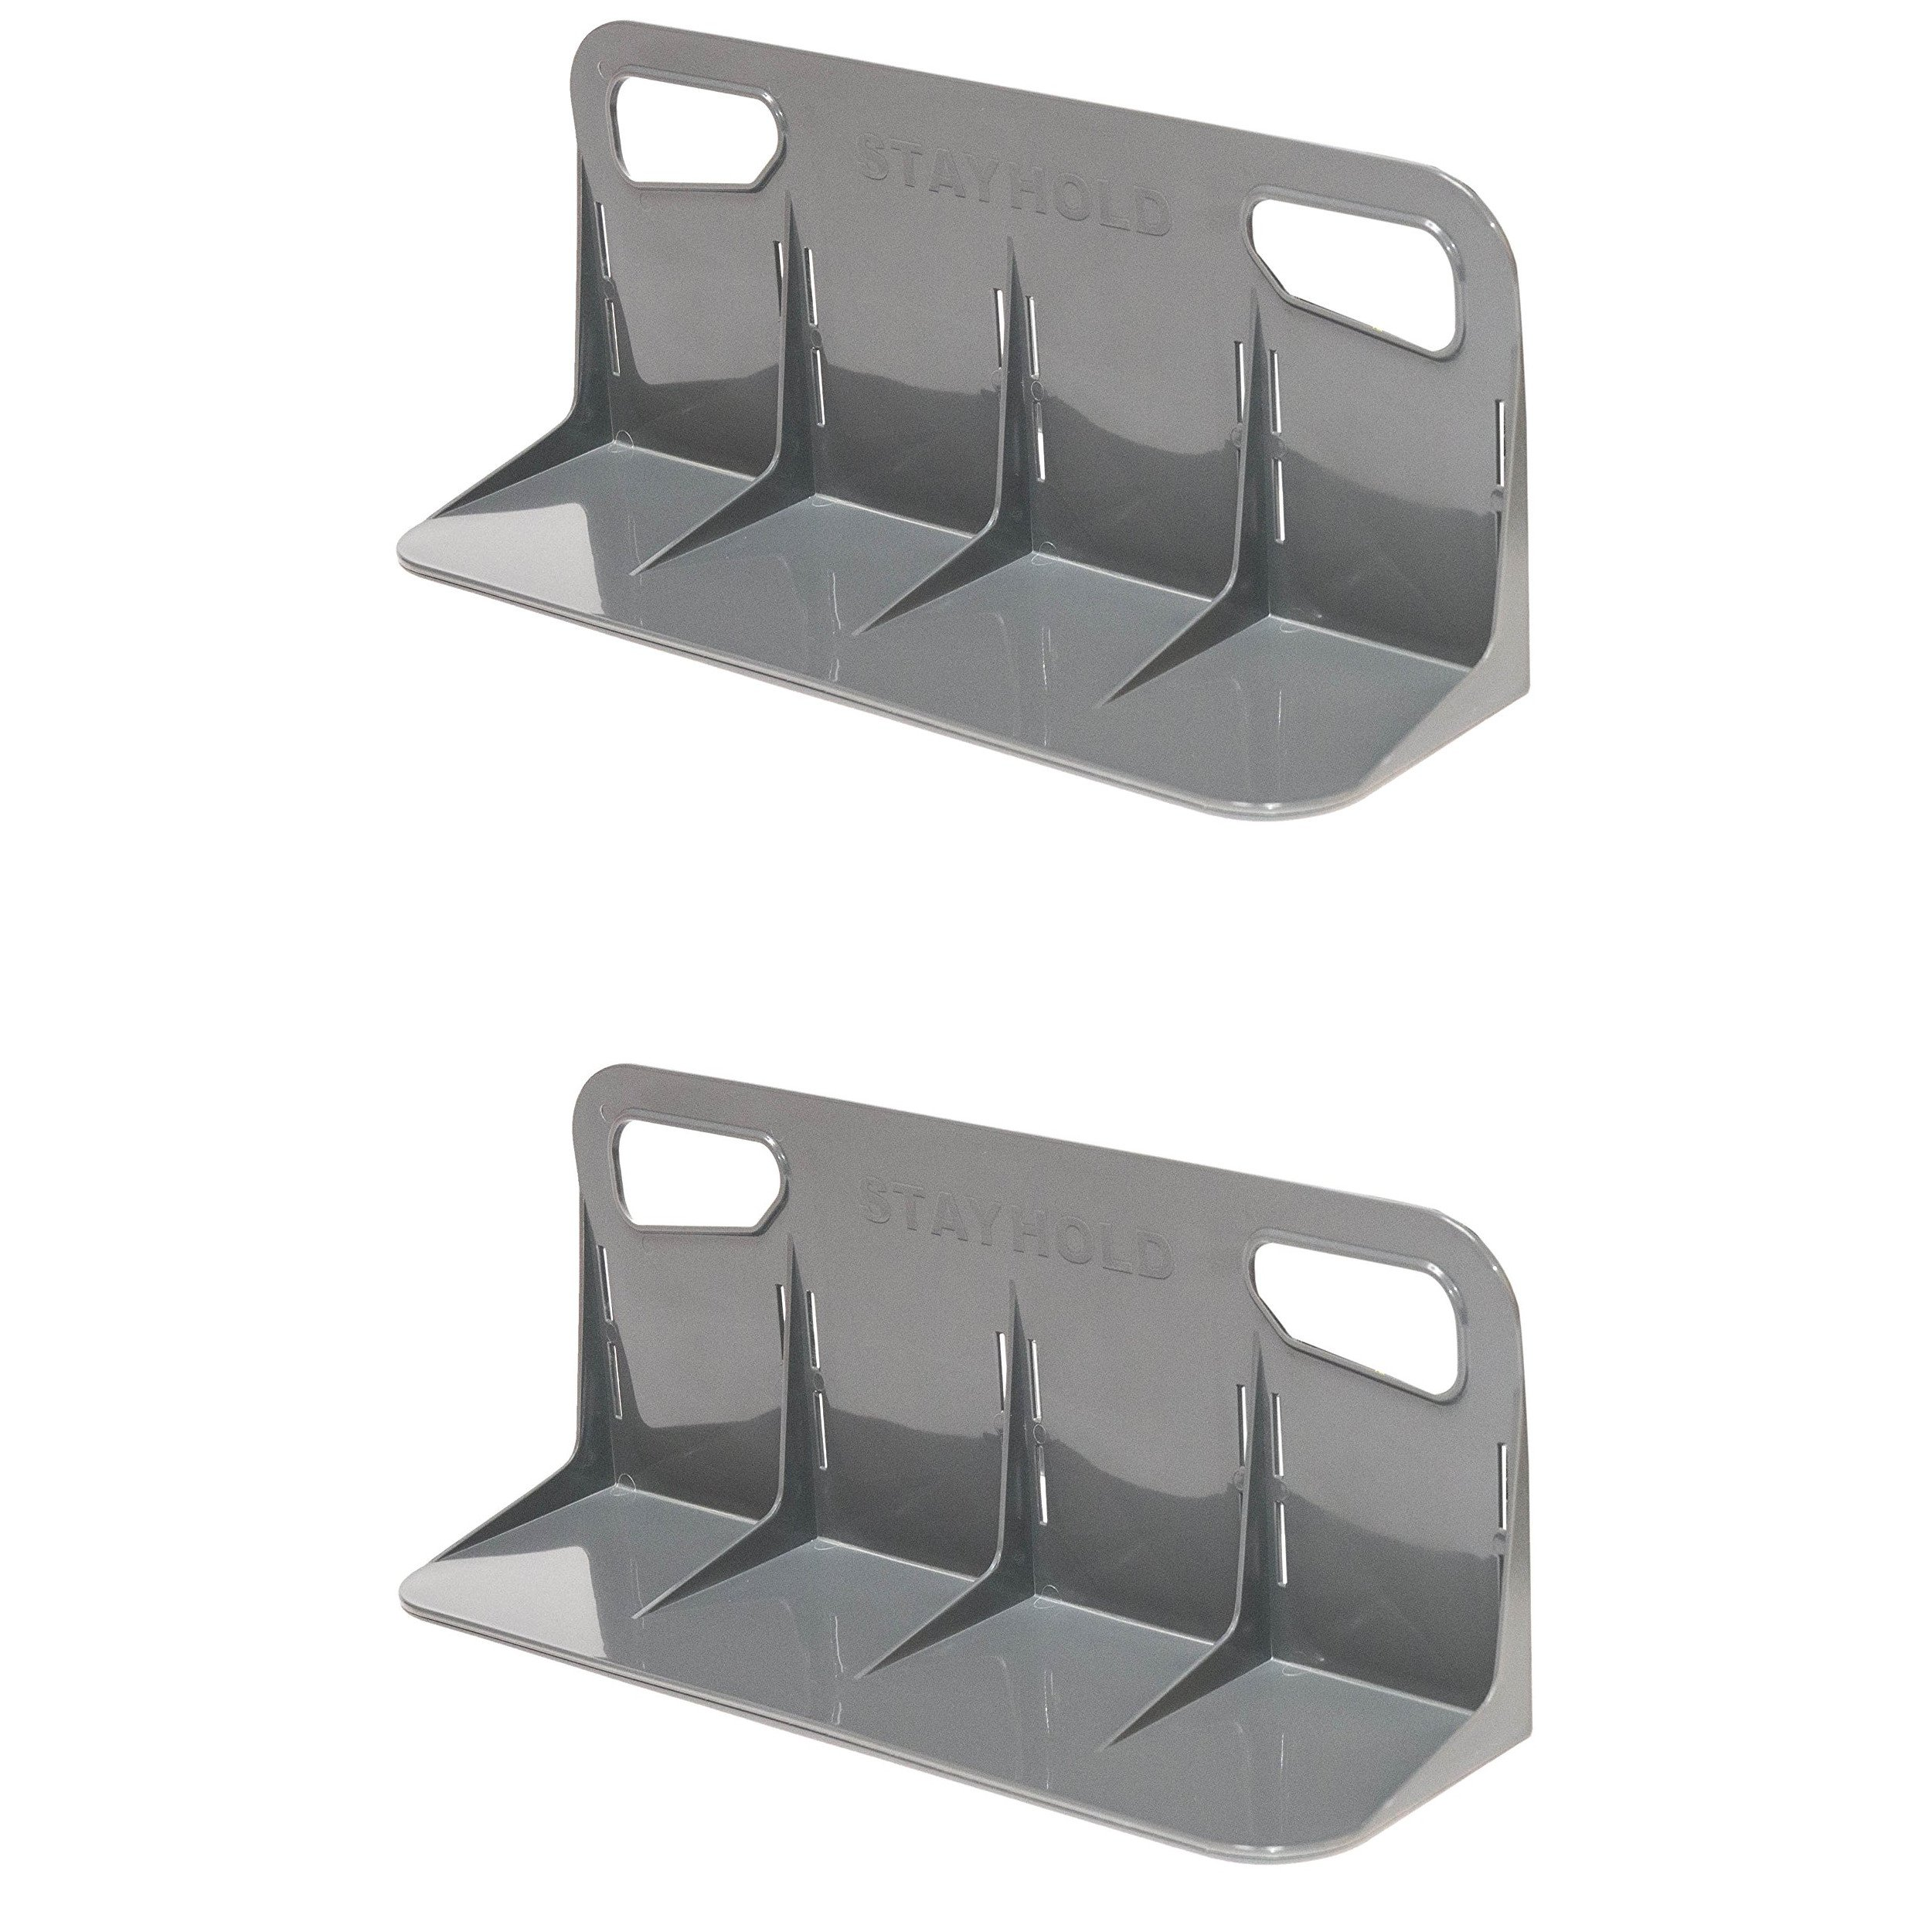 STAYHOLD Car Trunk Organizer, Adapts to Hold Any Size or Shape Item   Sticks to Carpet with Hard Gripping VELCRO Brand Technology   Cars, Trucks, SUV, Minivan & Boats   Size L 2Pk, Classic   Gray by Stayhold